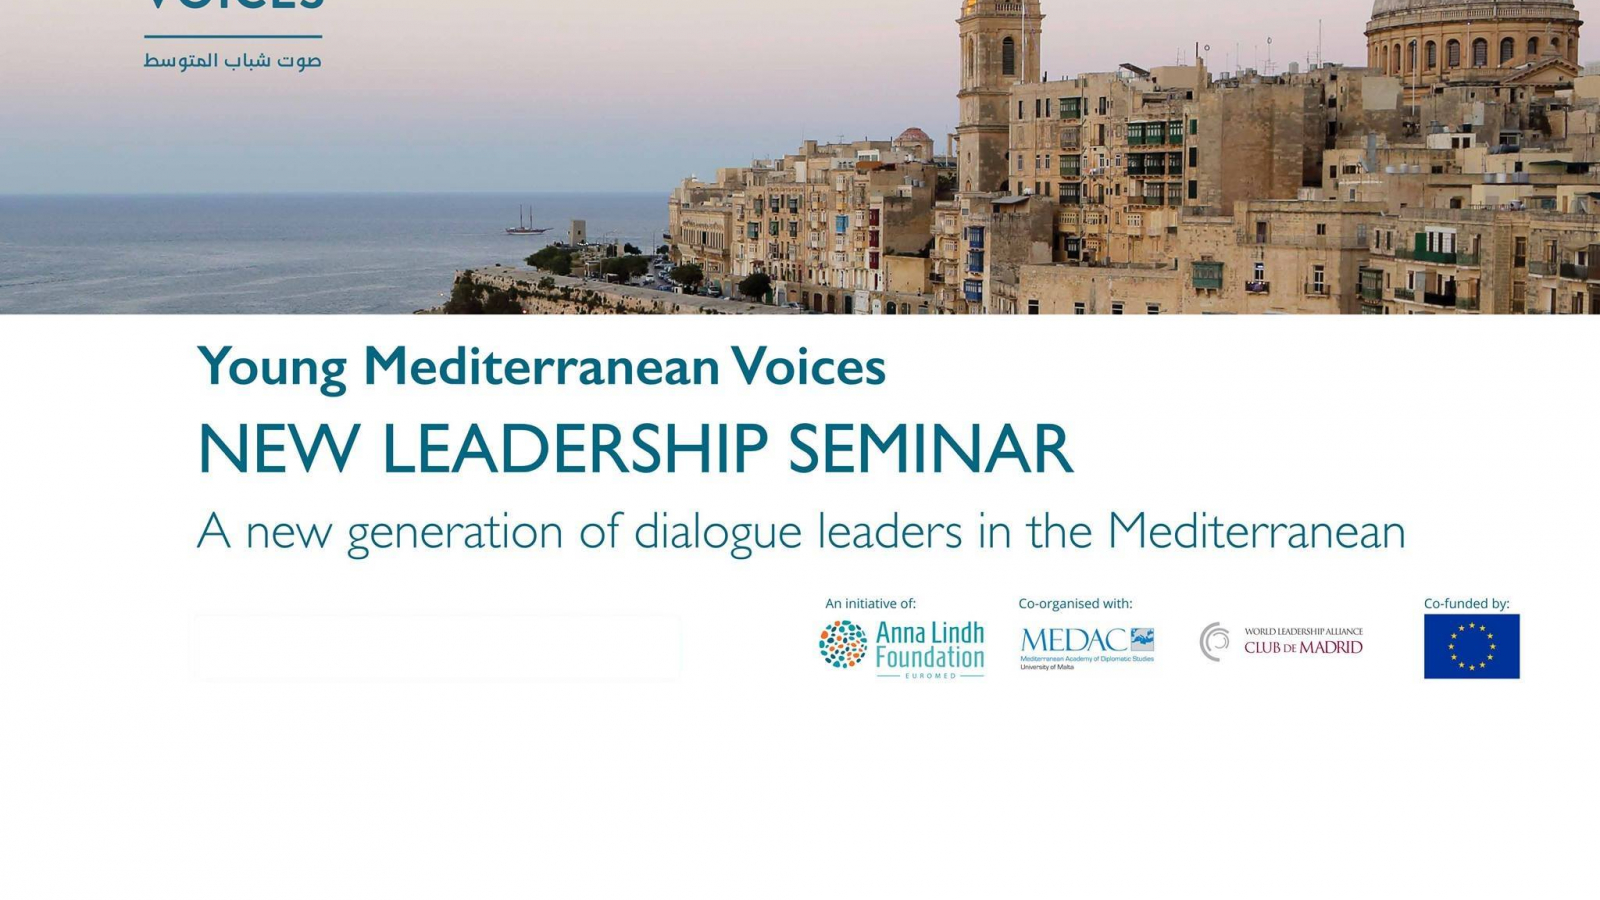 Call for participation to Young Mediterranean Voices New Leadership Seminar